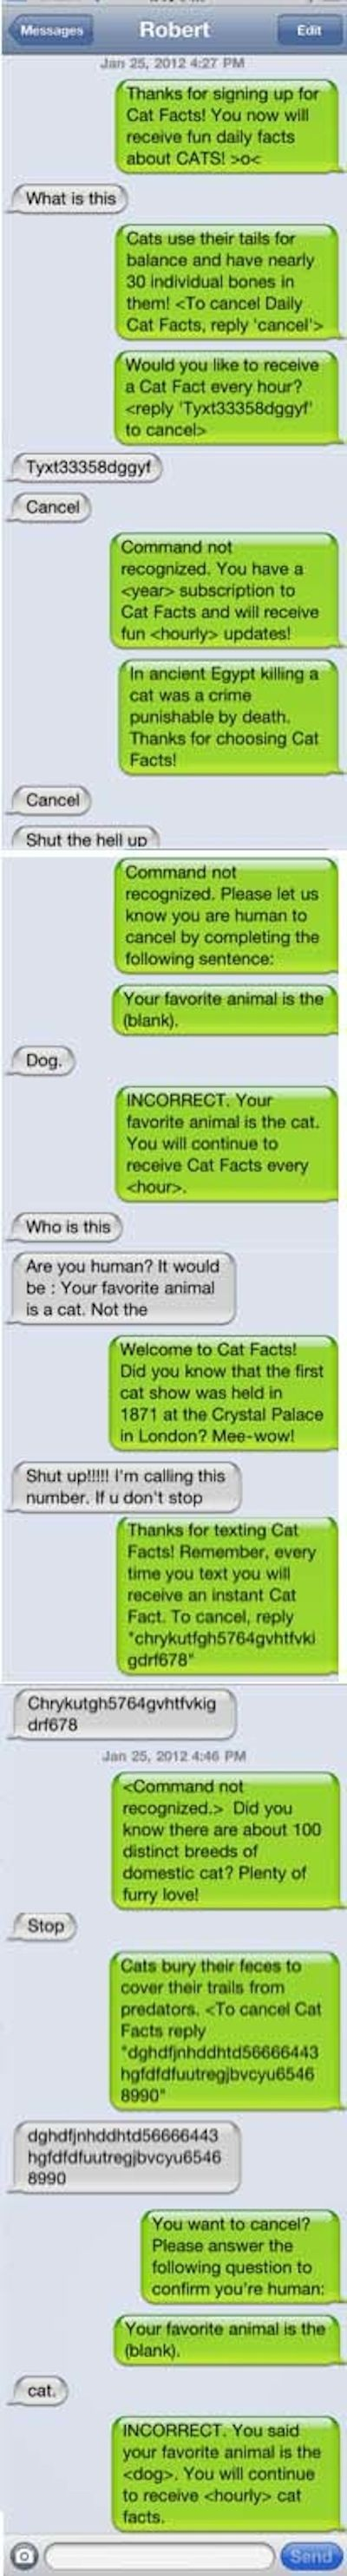 The 18 Best Ways To Handle A Text From The Wrong Number